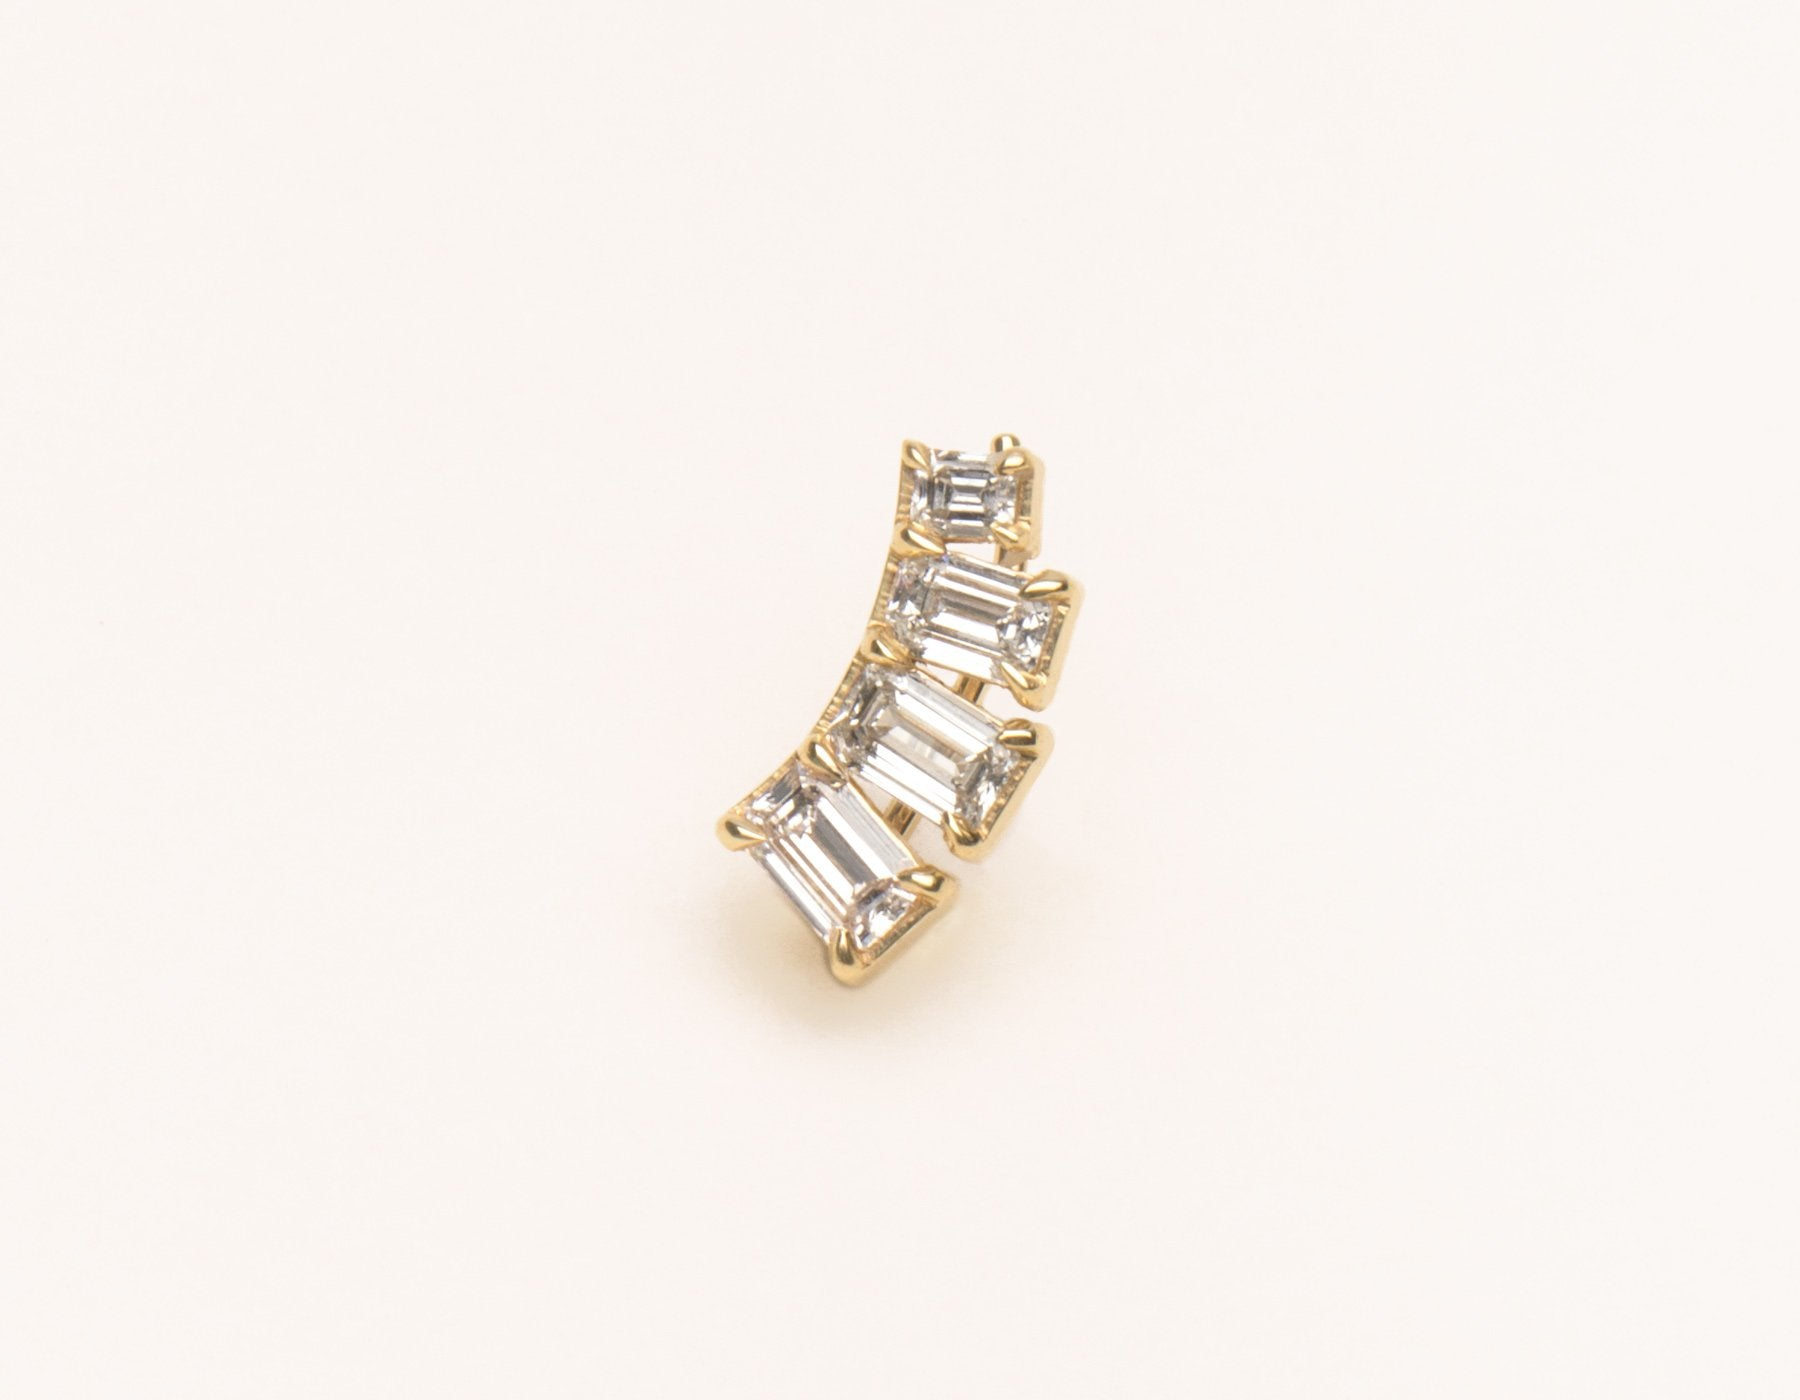 Simple Classic 14k solid gold Emerald cut Diamond Arc Earring cuff by Vrai and Oro, 14K Yellow Gold